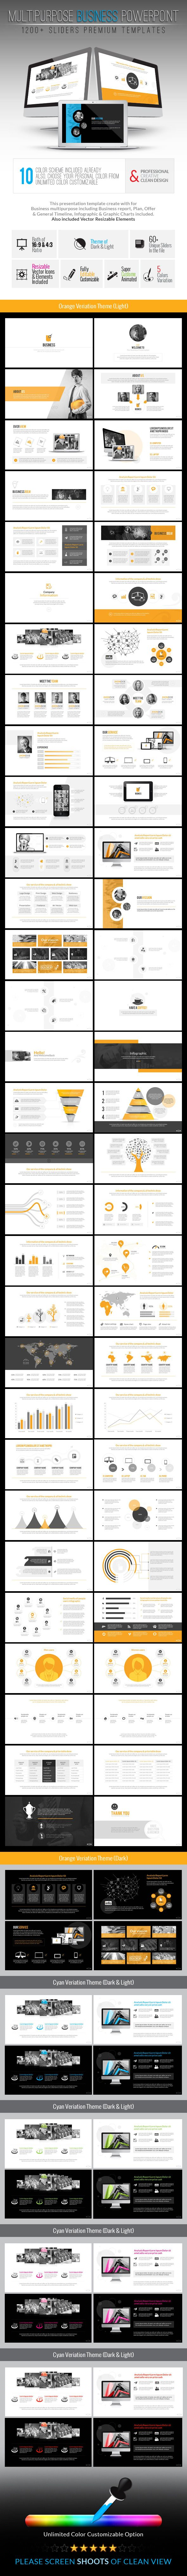 Business_Multipurpose Presentation Templates — Powerpoint PPTX #business #black • Available here → https://graphicriver.net/item/business_multipurpose-presentation-templates/8861964?ref=pxcr